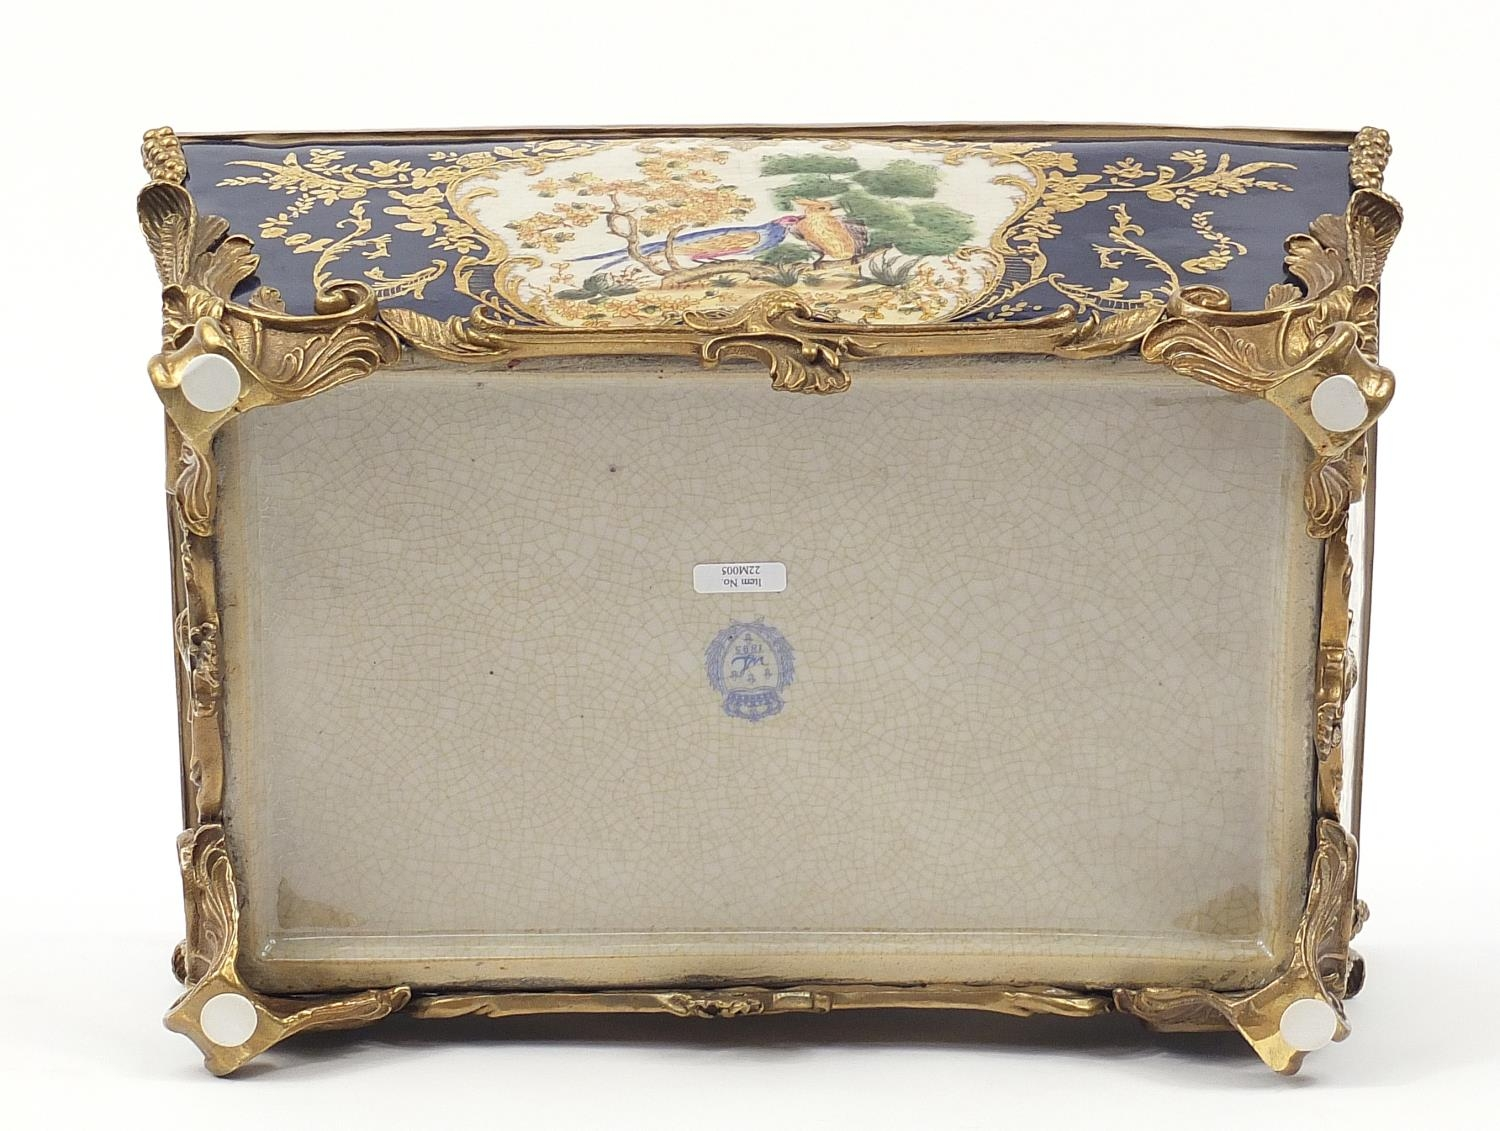 Continental bronze mounted porcelain table casket decorated with birds, leaves and berries, 35cm H x - Image 9 of 10